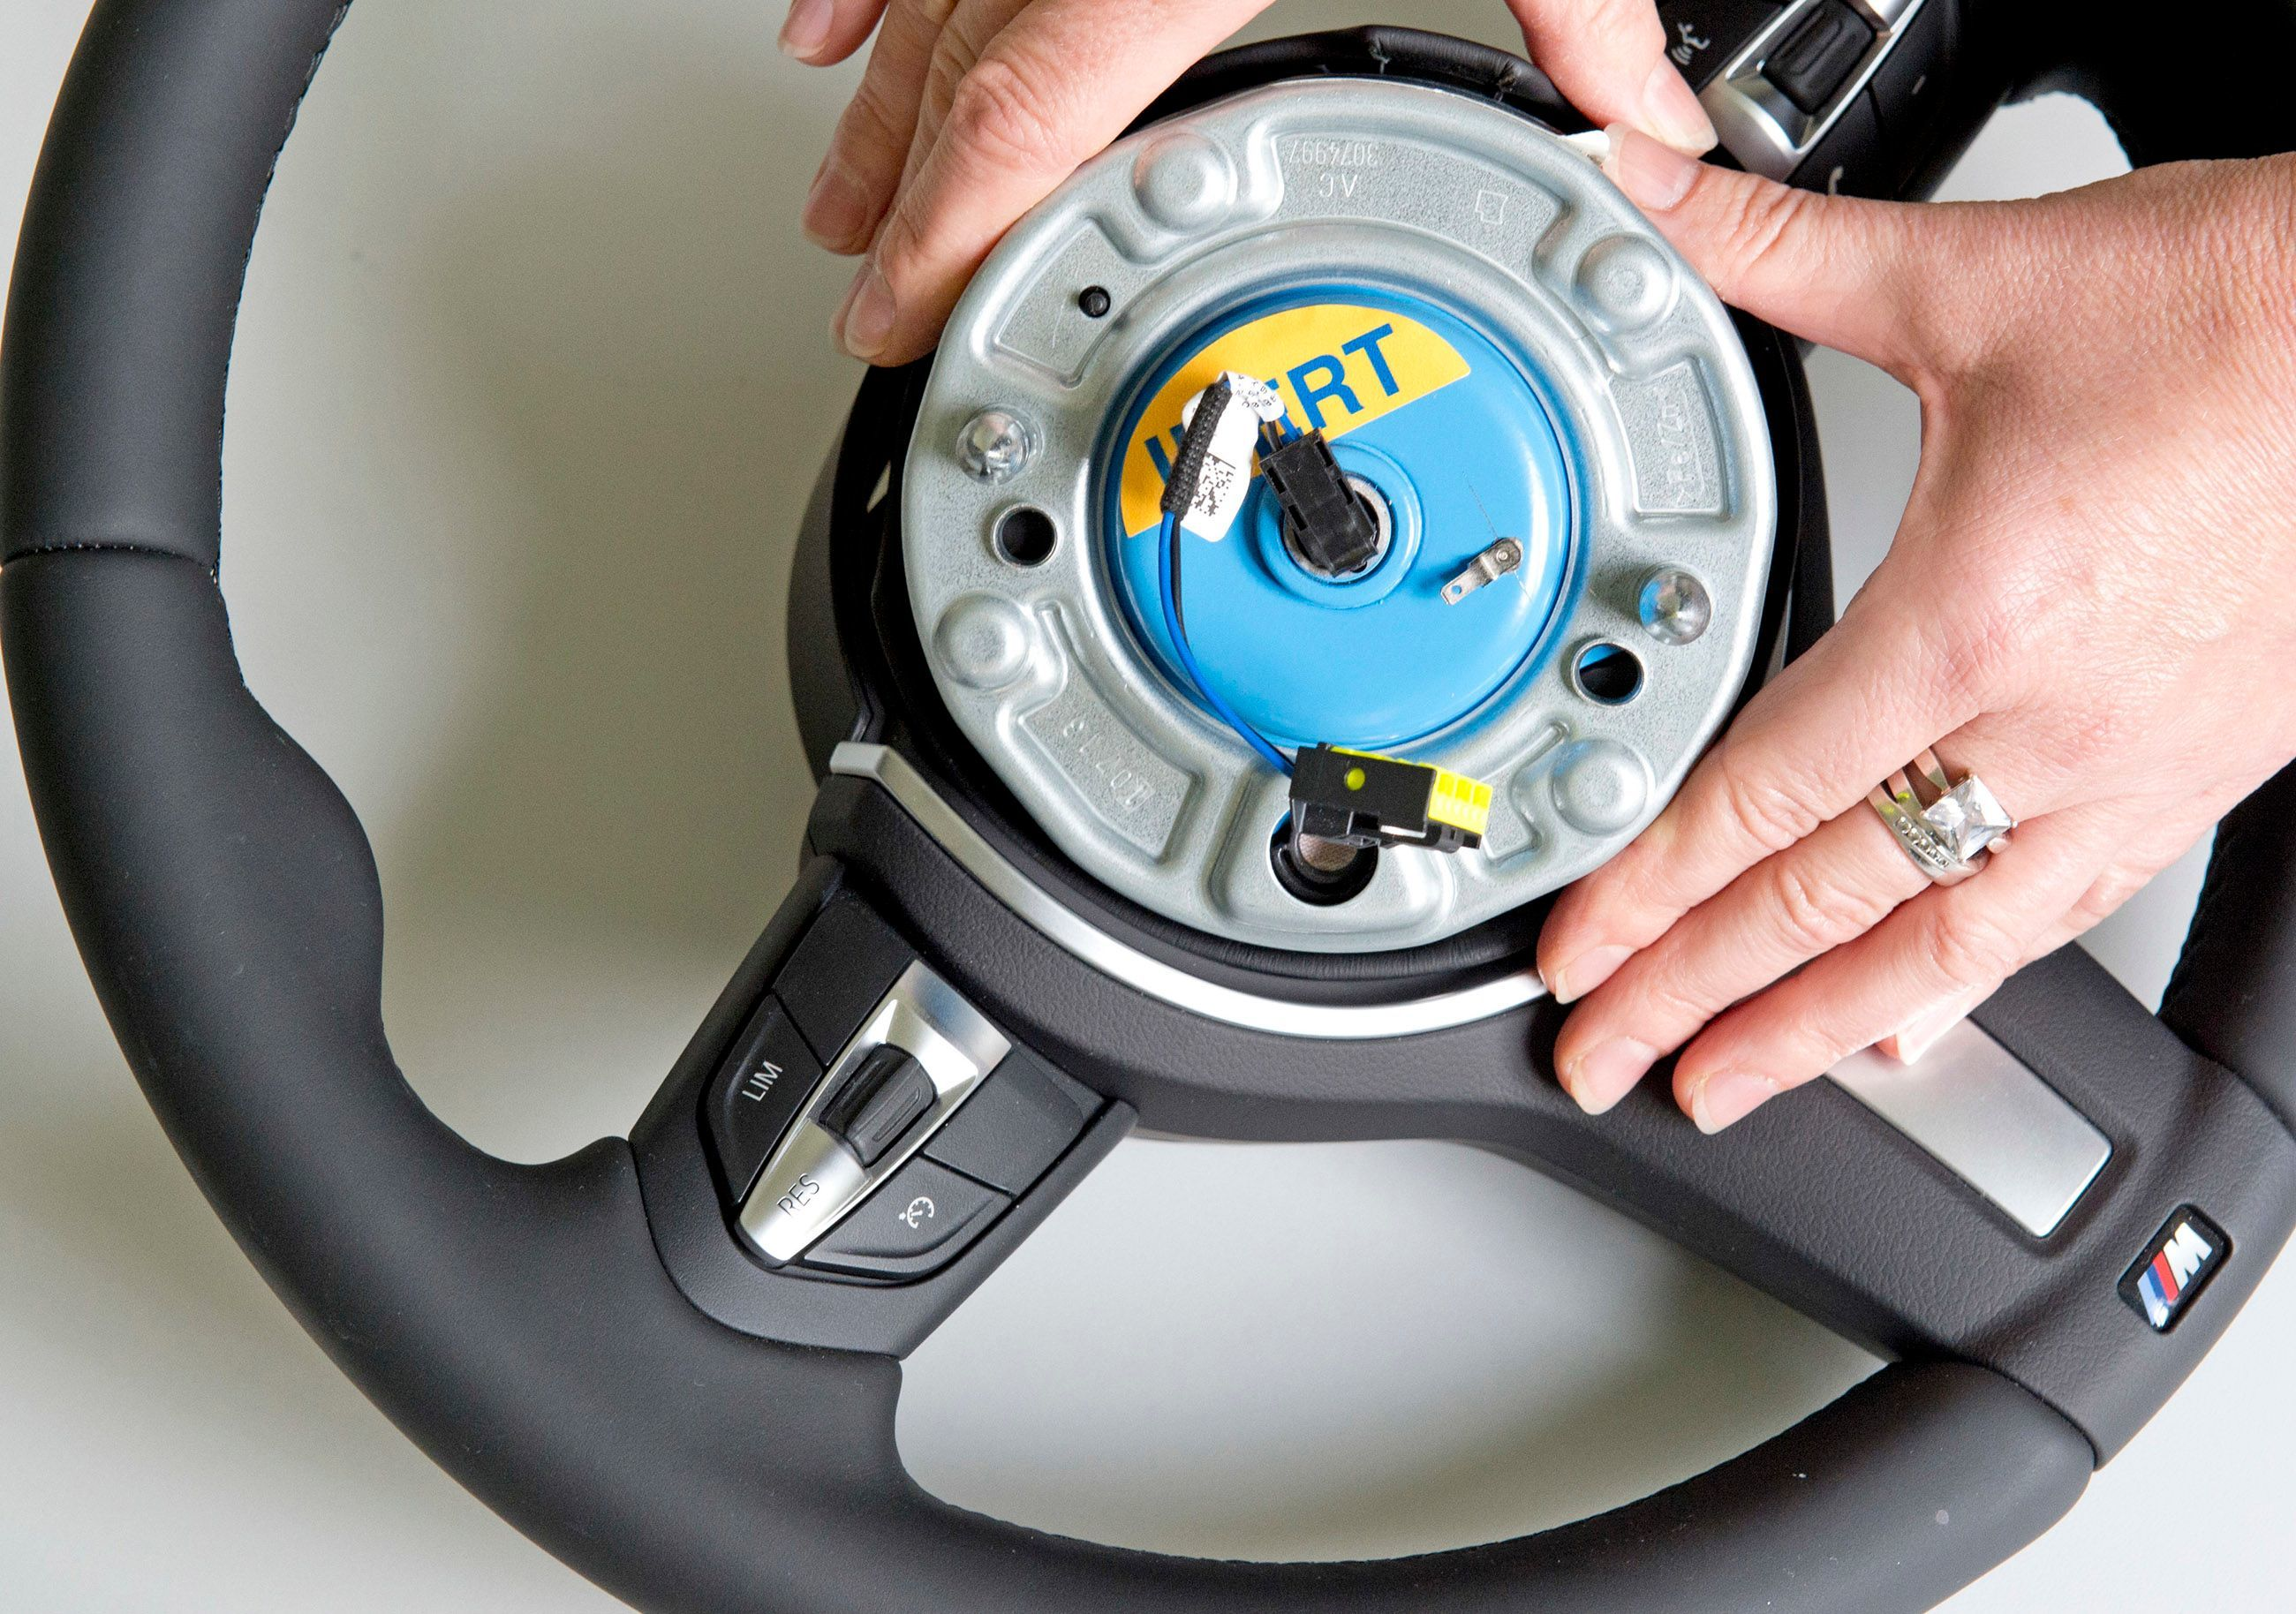 A worker demonstrates a pyro-electric wheel airbag initiator during a presentation for journalists at the international automotive supplier Takata Ignition Systems in 2014. Takata acknowledged in 2015 that it had supplied defective airbags for use in millions of vehicles.